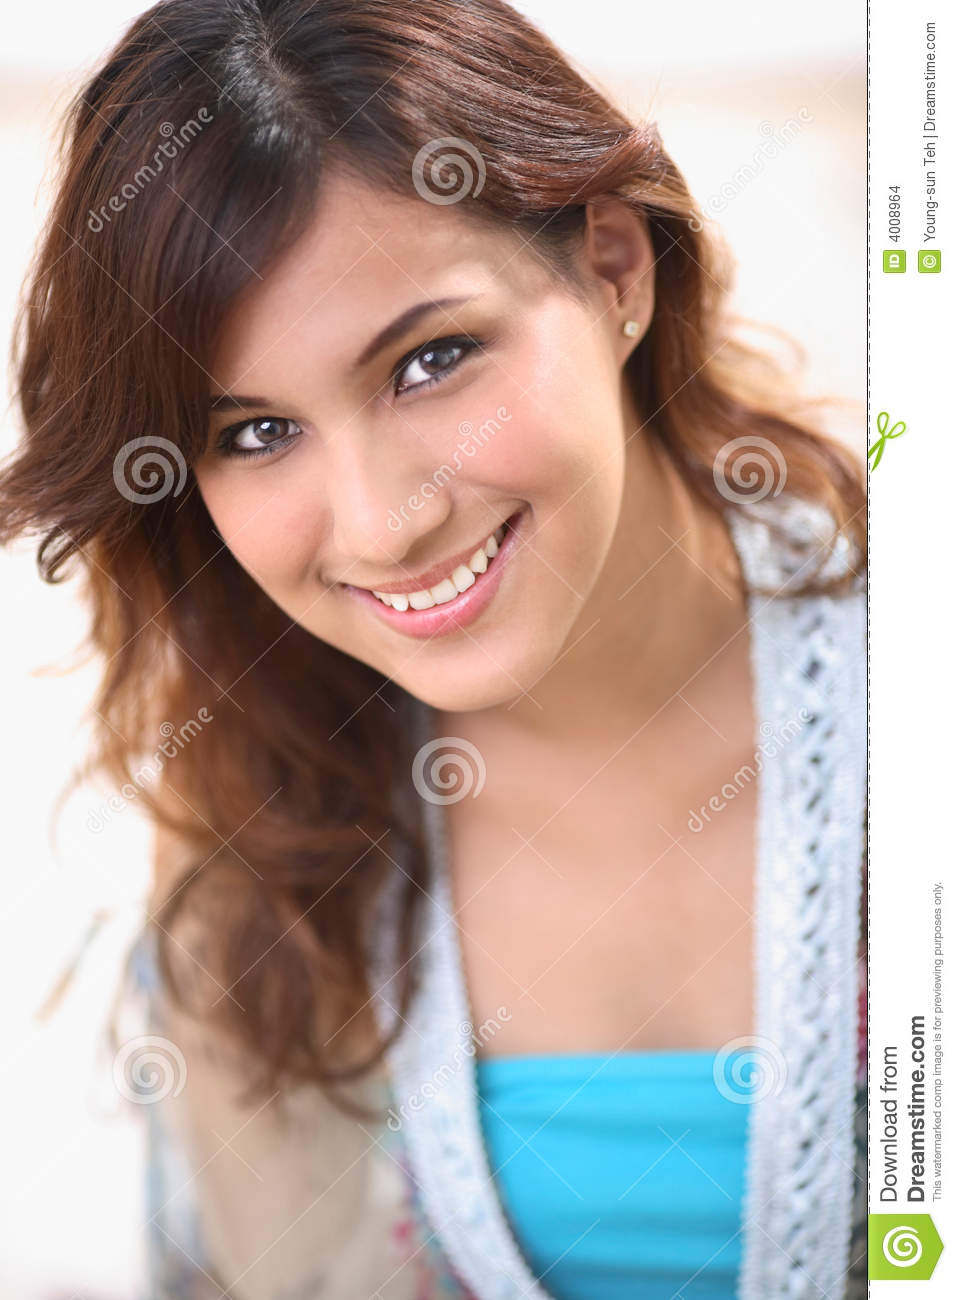 Smiling Sweet Woman Stock Images - Image: 4008964